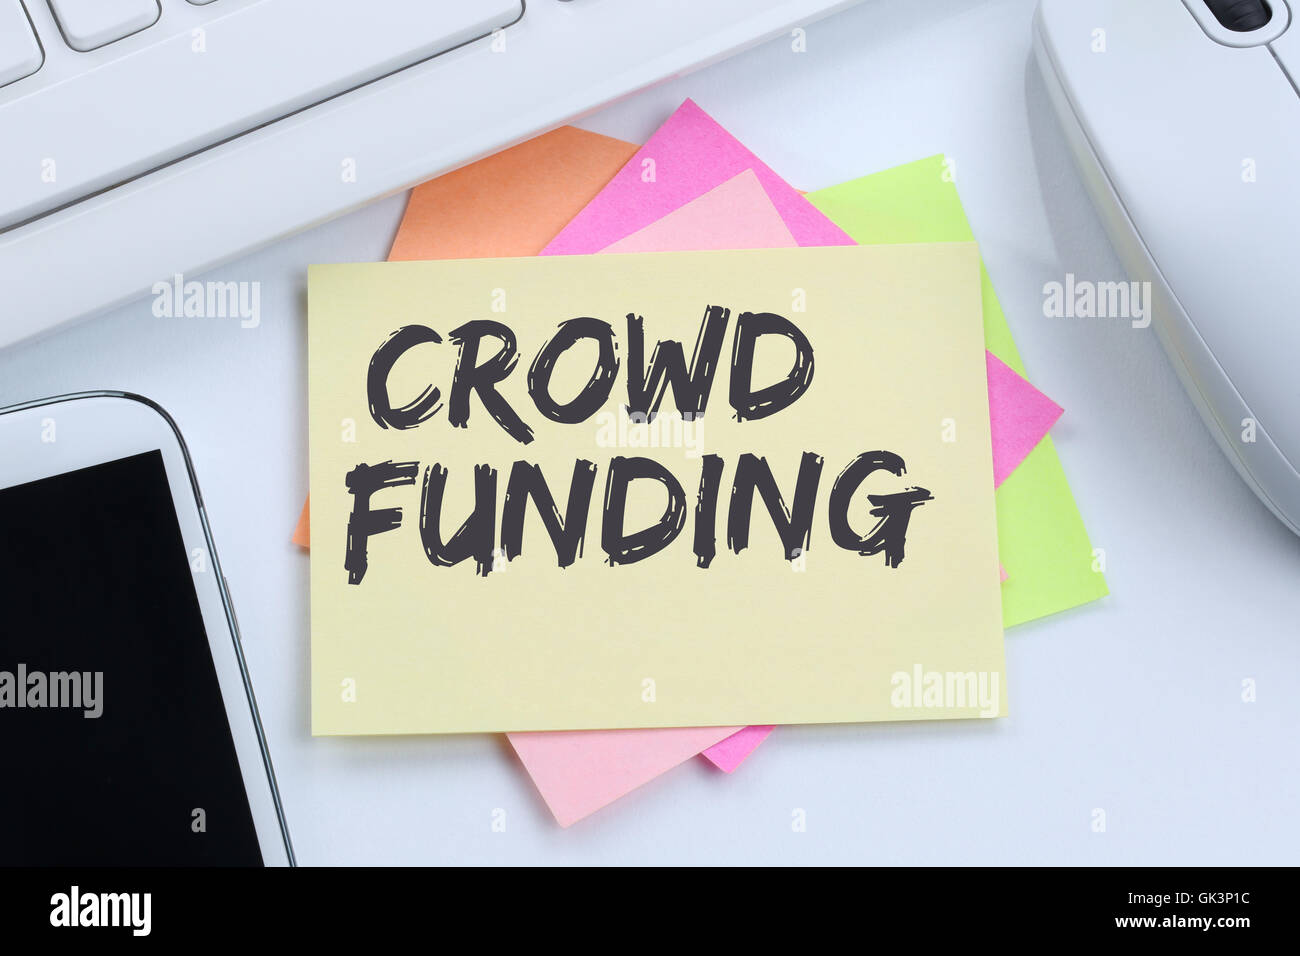 Crowd funding crowdfunding collecting money online investment internet business concept desk computer keyboard - Stock Image